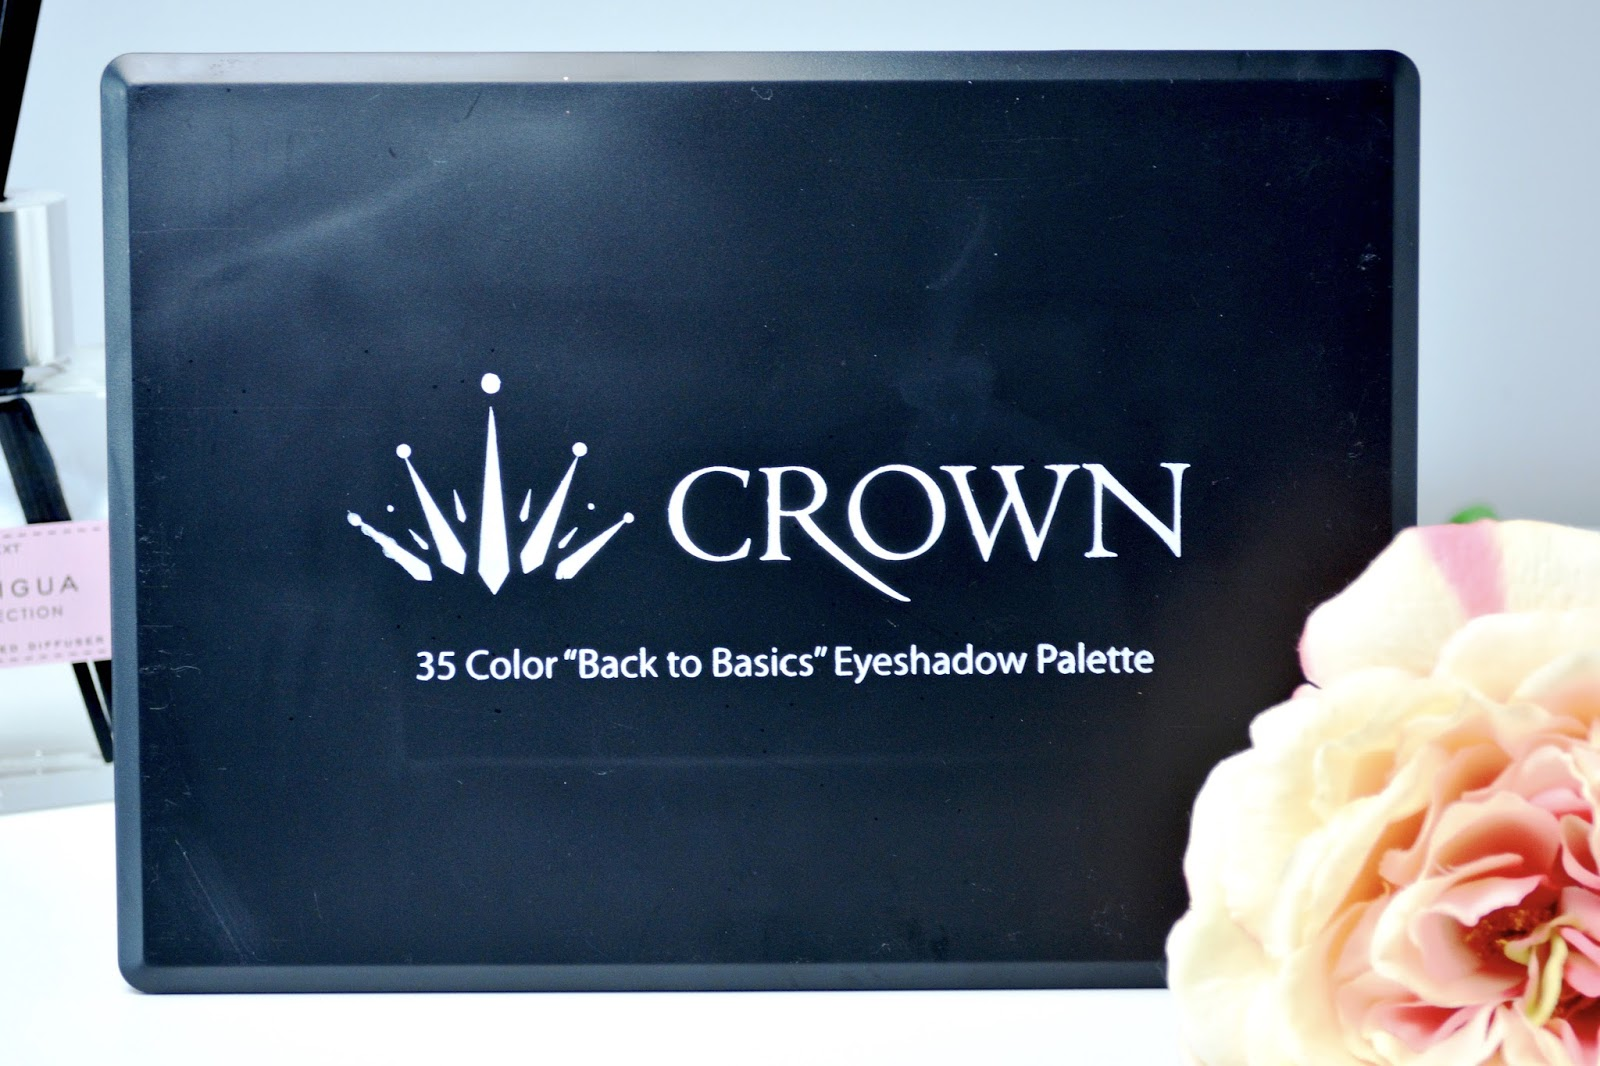 Crown Brush, Crown Brush Eyeshadow Palette, Palette, Eyeshadow, Shadow, Back To Basics Makeup, Back To Basics Palette